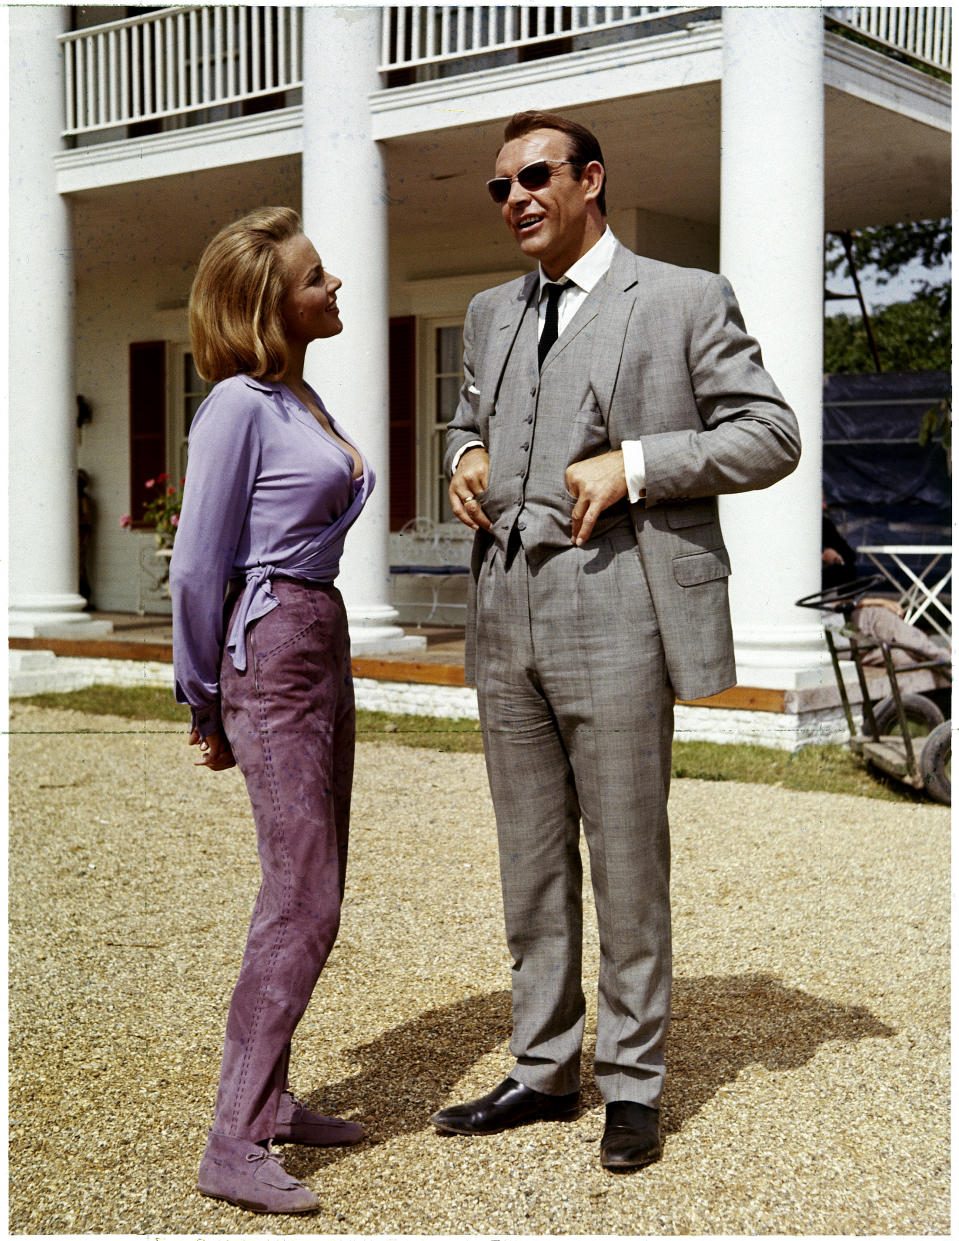 """Honor Blackman, Sean Connery in """"Goldfinger"""" 1964   (Photo by RDB/ullstein bild via Getty Images)"""